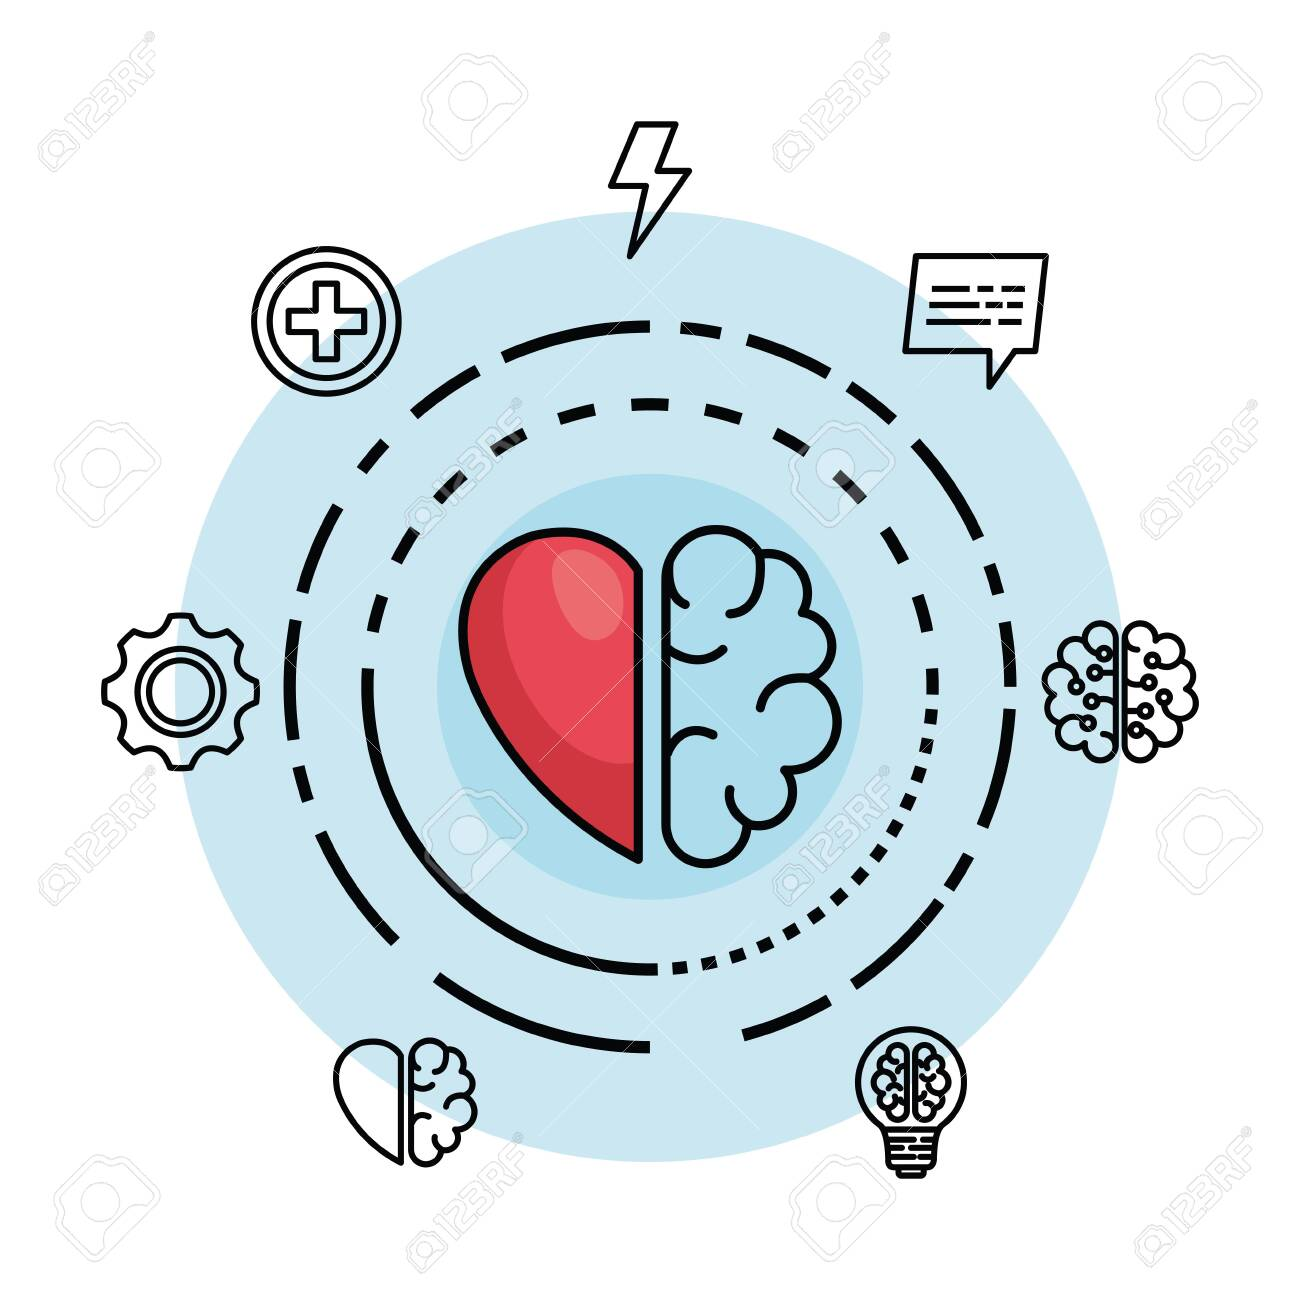 creative brain with heart to creative mind vector illustration - 126607814